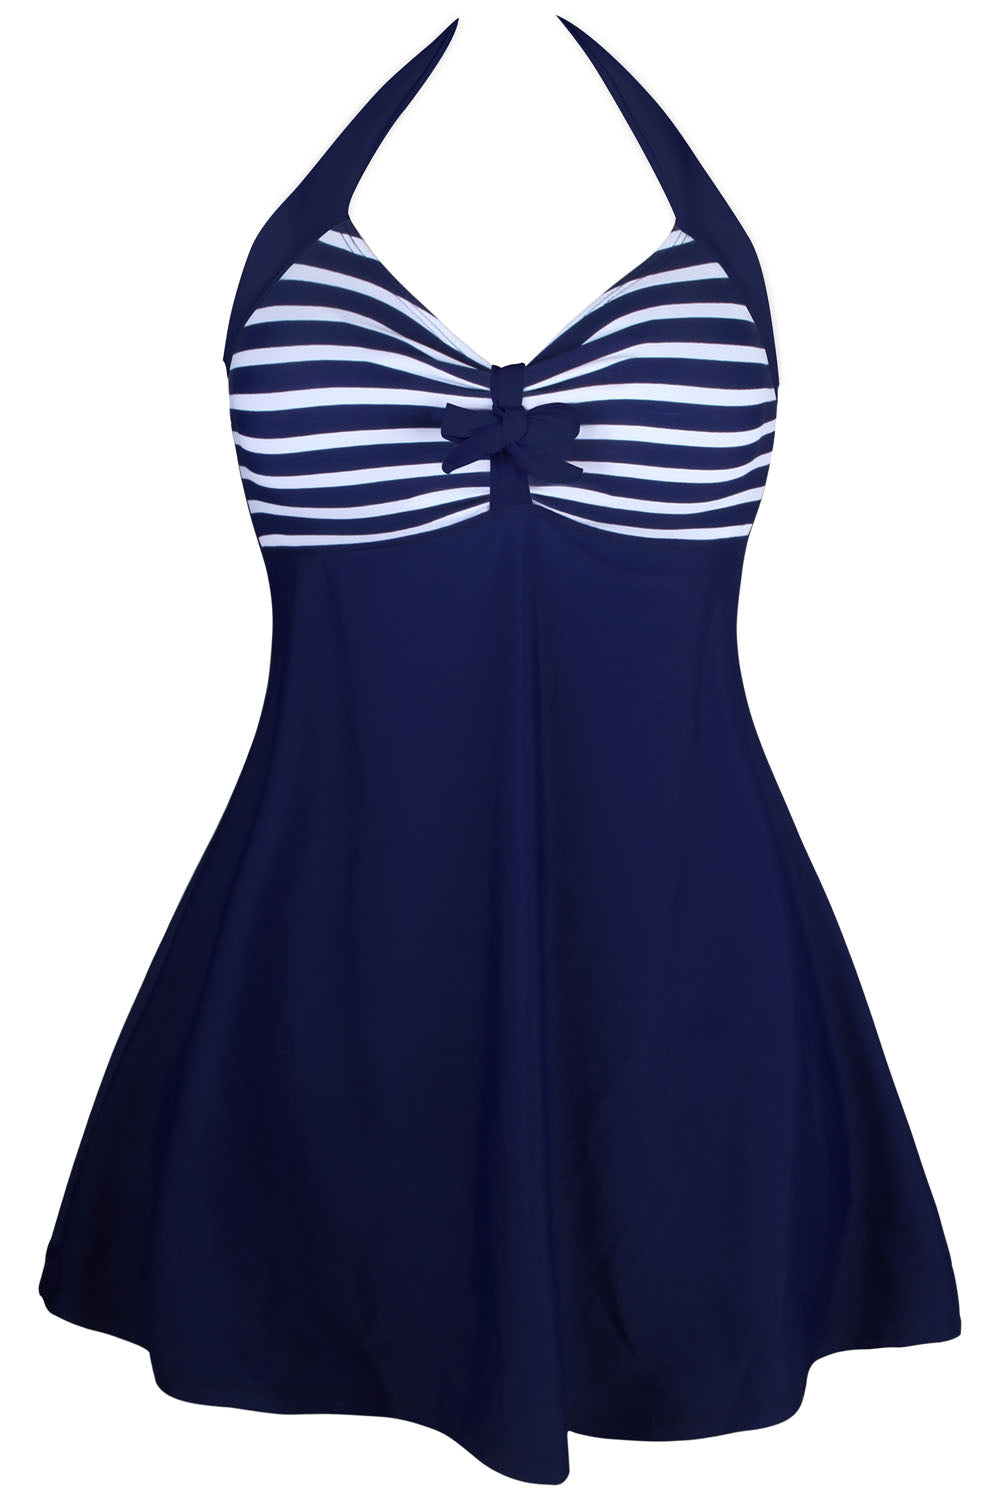 Navy White Stripes One-piece Swimdress One-Piece Swimwear